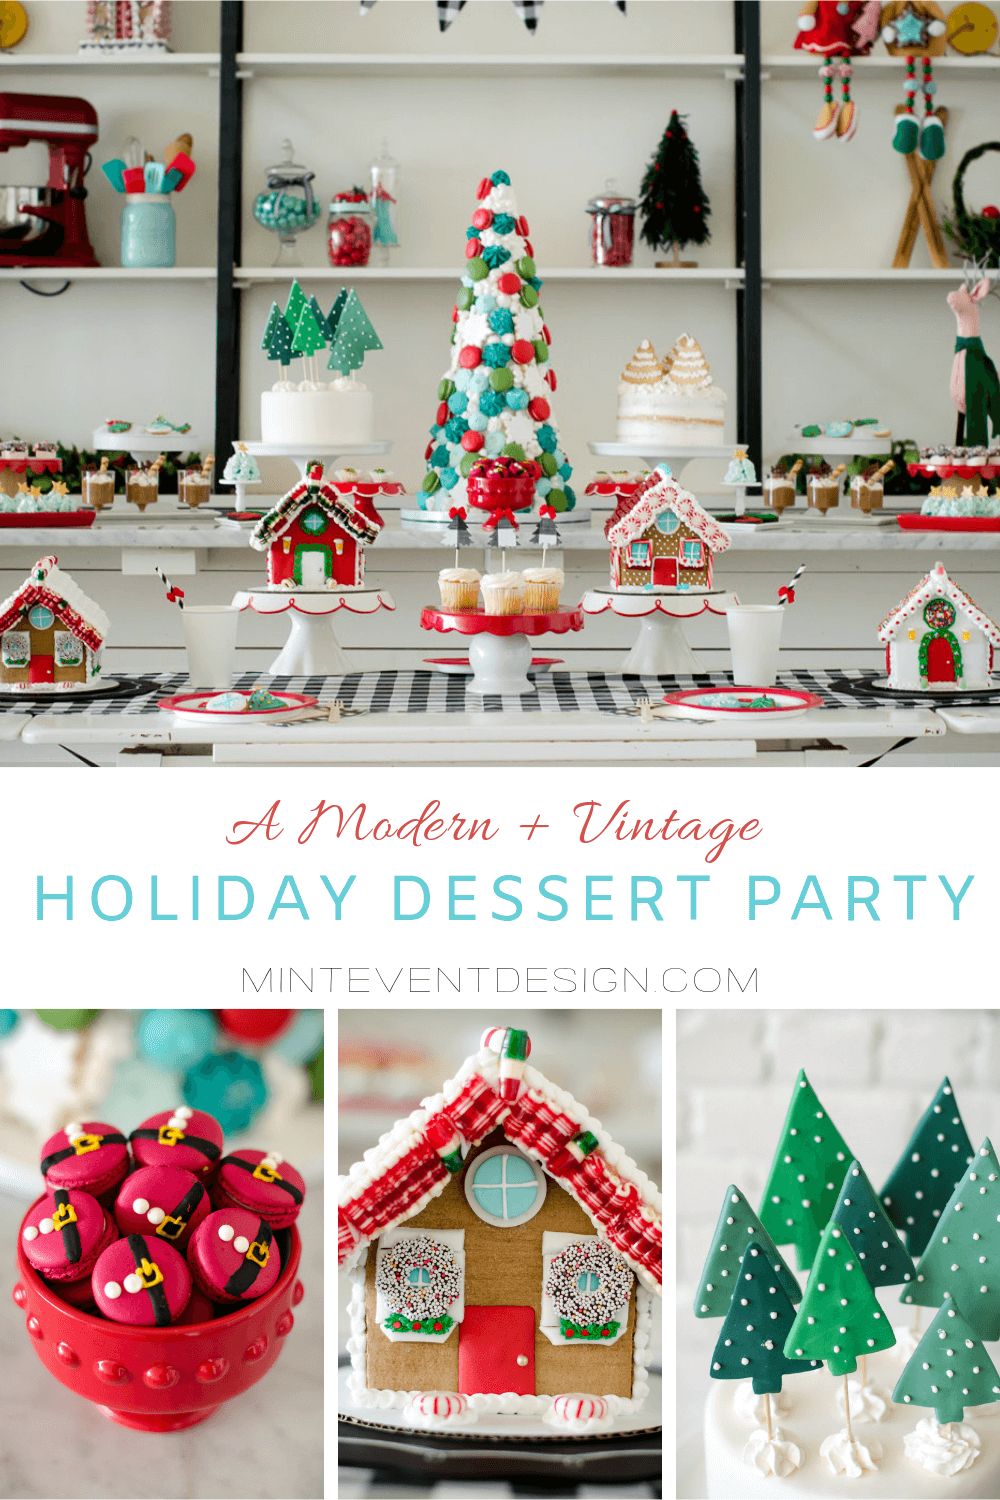 How to Host a Modern and Vintage Holiday Dessert Party. It's time for the ladies and moms to gather and celebrate the holiday season with hot cocoa and treats, talk about the Christmases of our childhoods, and decorate gingerbread houses and cookies. This gorgeous Holiday party inspiration is from Austin Texas based party stylist Mint Event Design. www.minteventdesign.com #gingerbreadhouse #holidayparty #holidays #partyideas #christmasparty #holidaypartyideas #gingerbreadhouseideas